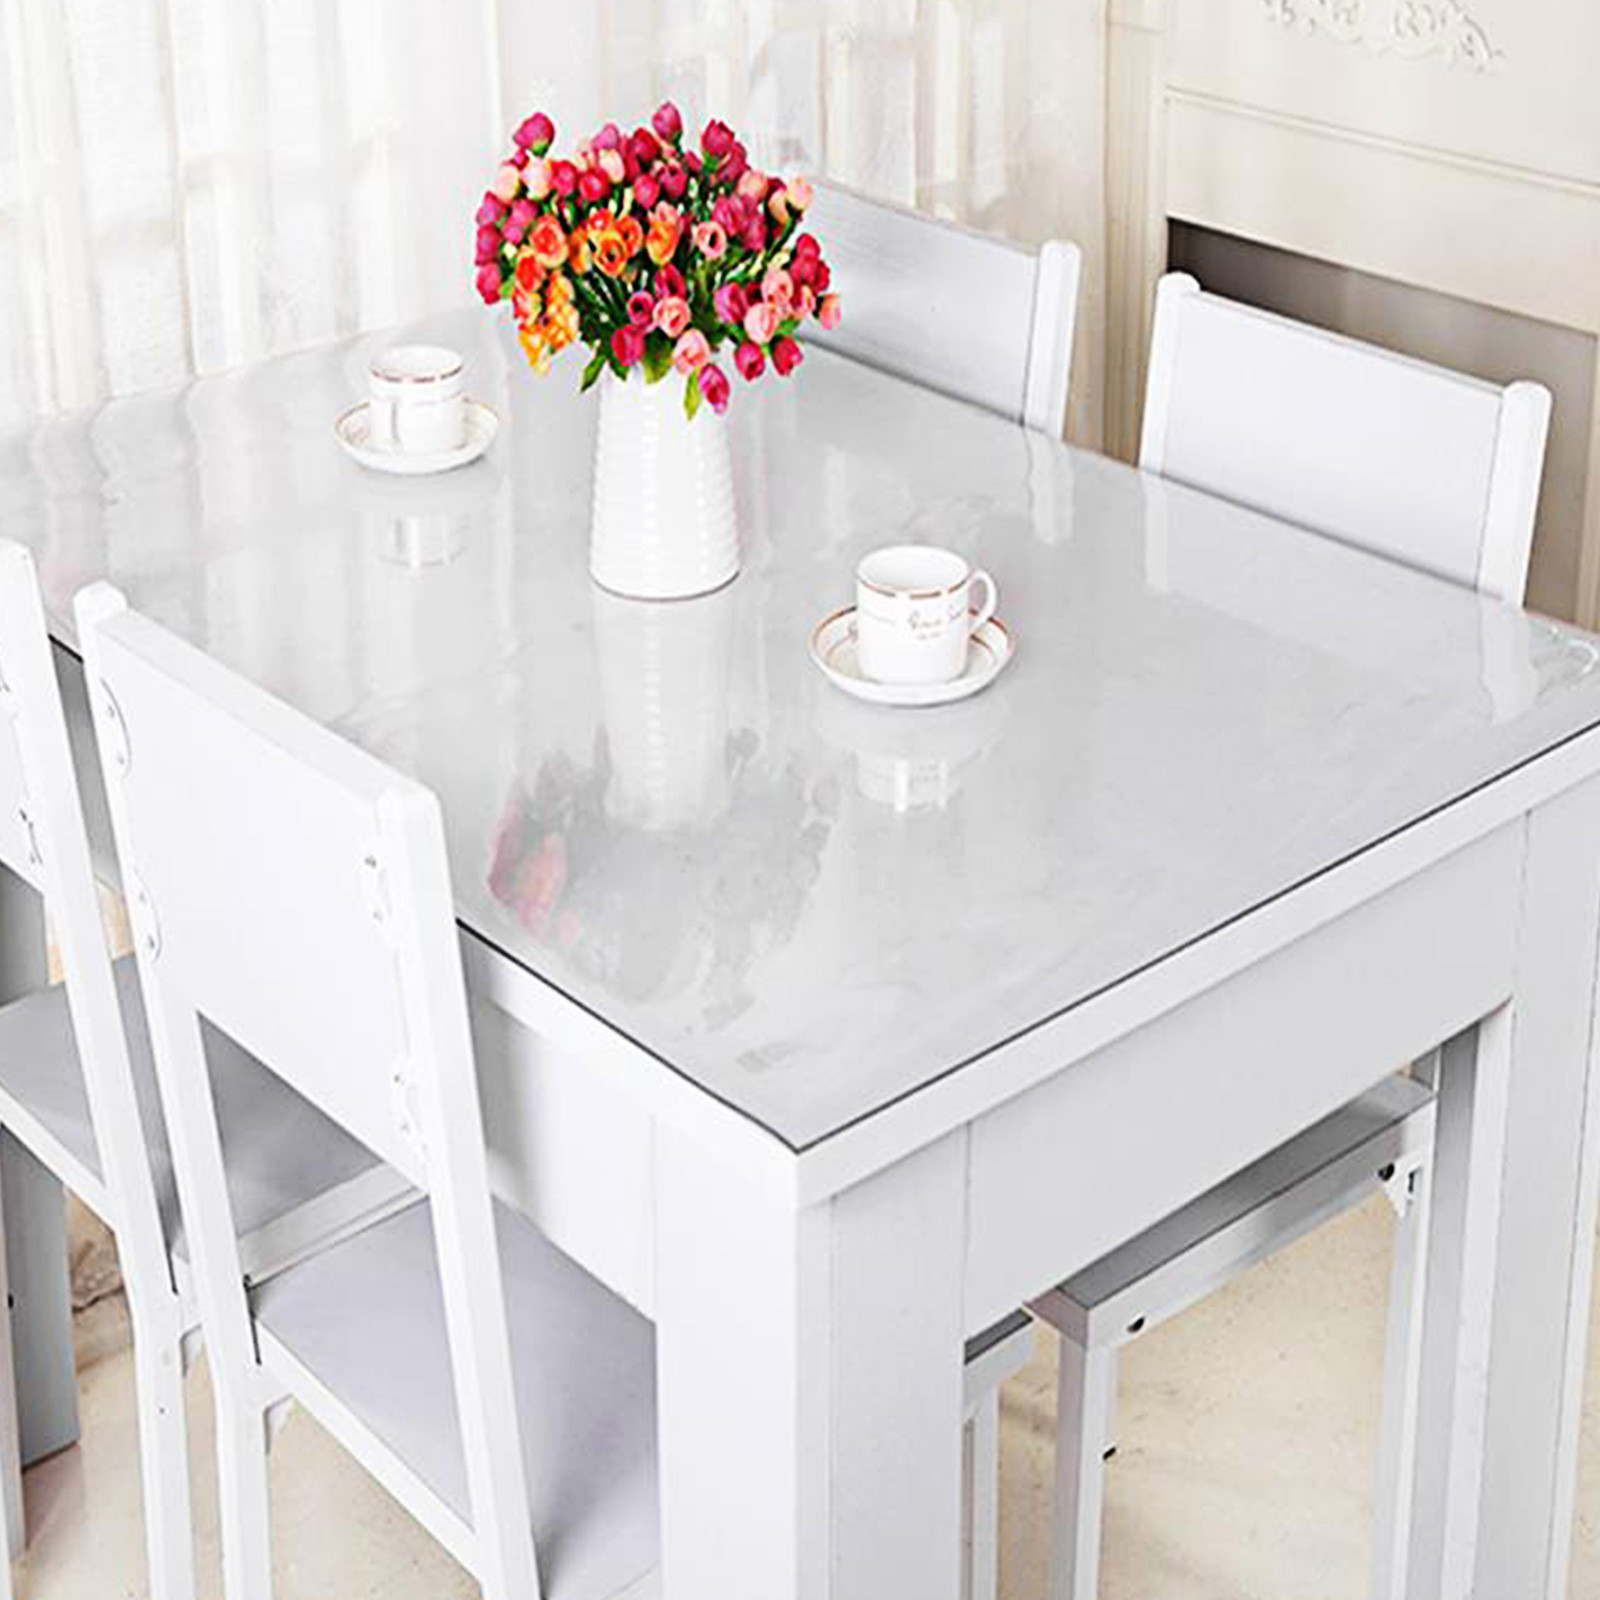 Waterproof Clear Plastic PVC Tablecloth Transparent Protector Dining Table Cover